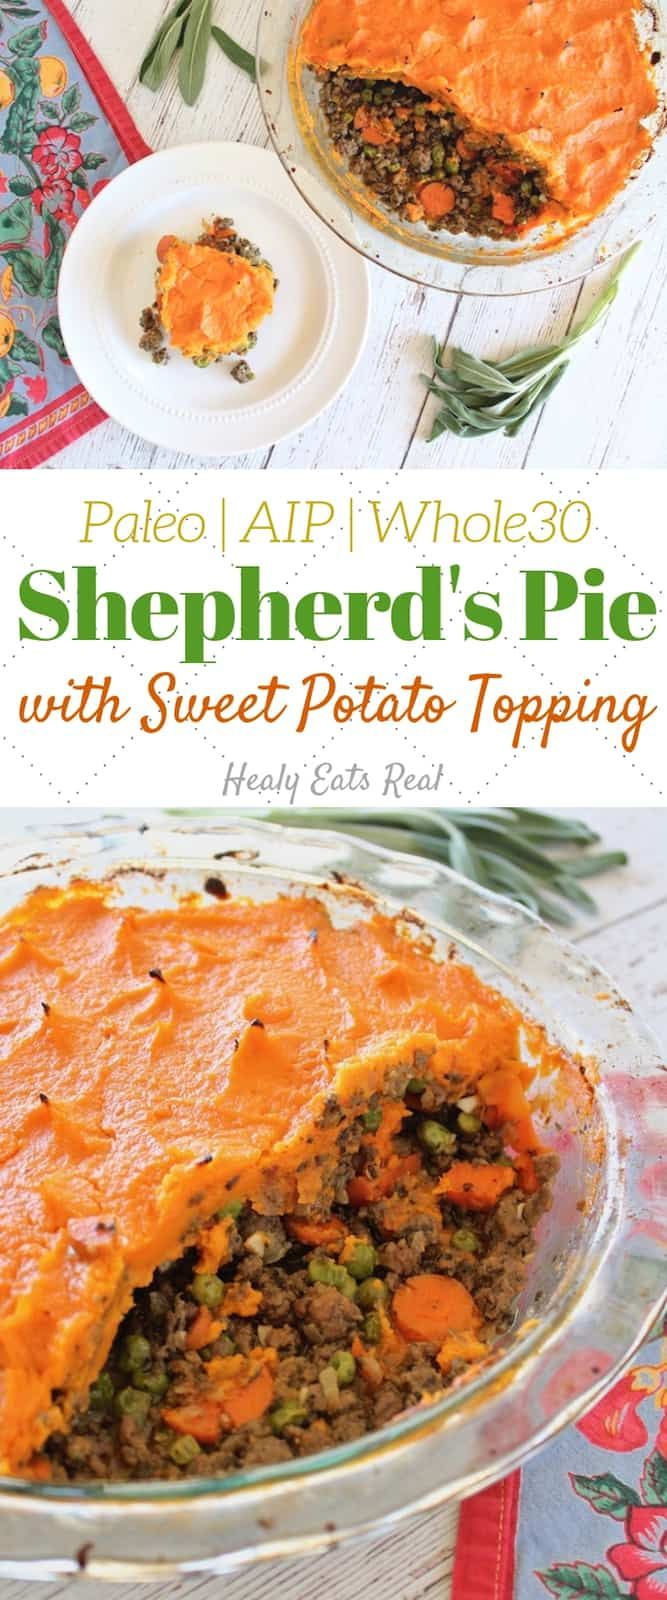 Shepherd's Pie Recipe with Sweet Potato (Paleo, AIP, Whole30) images